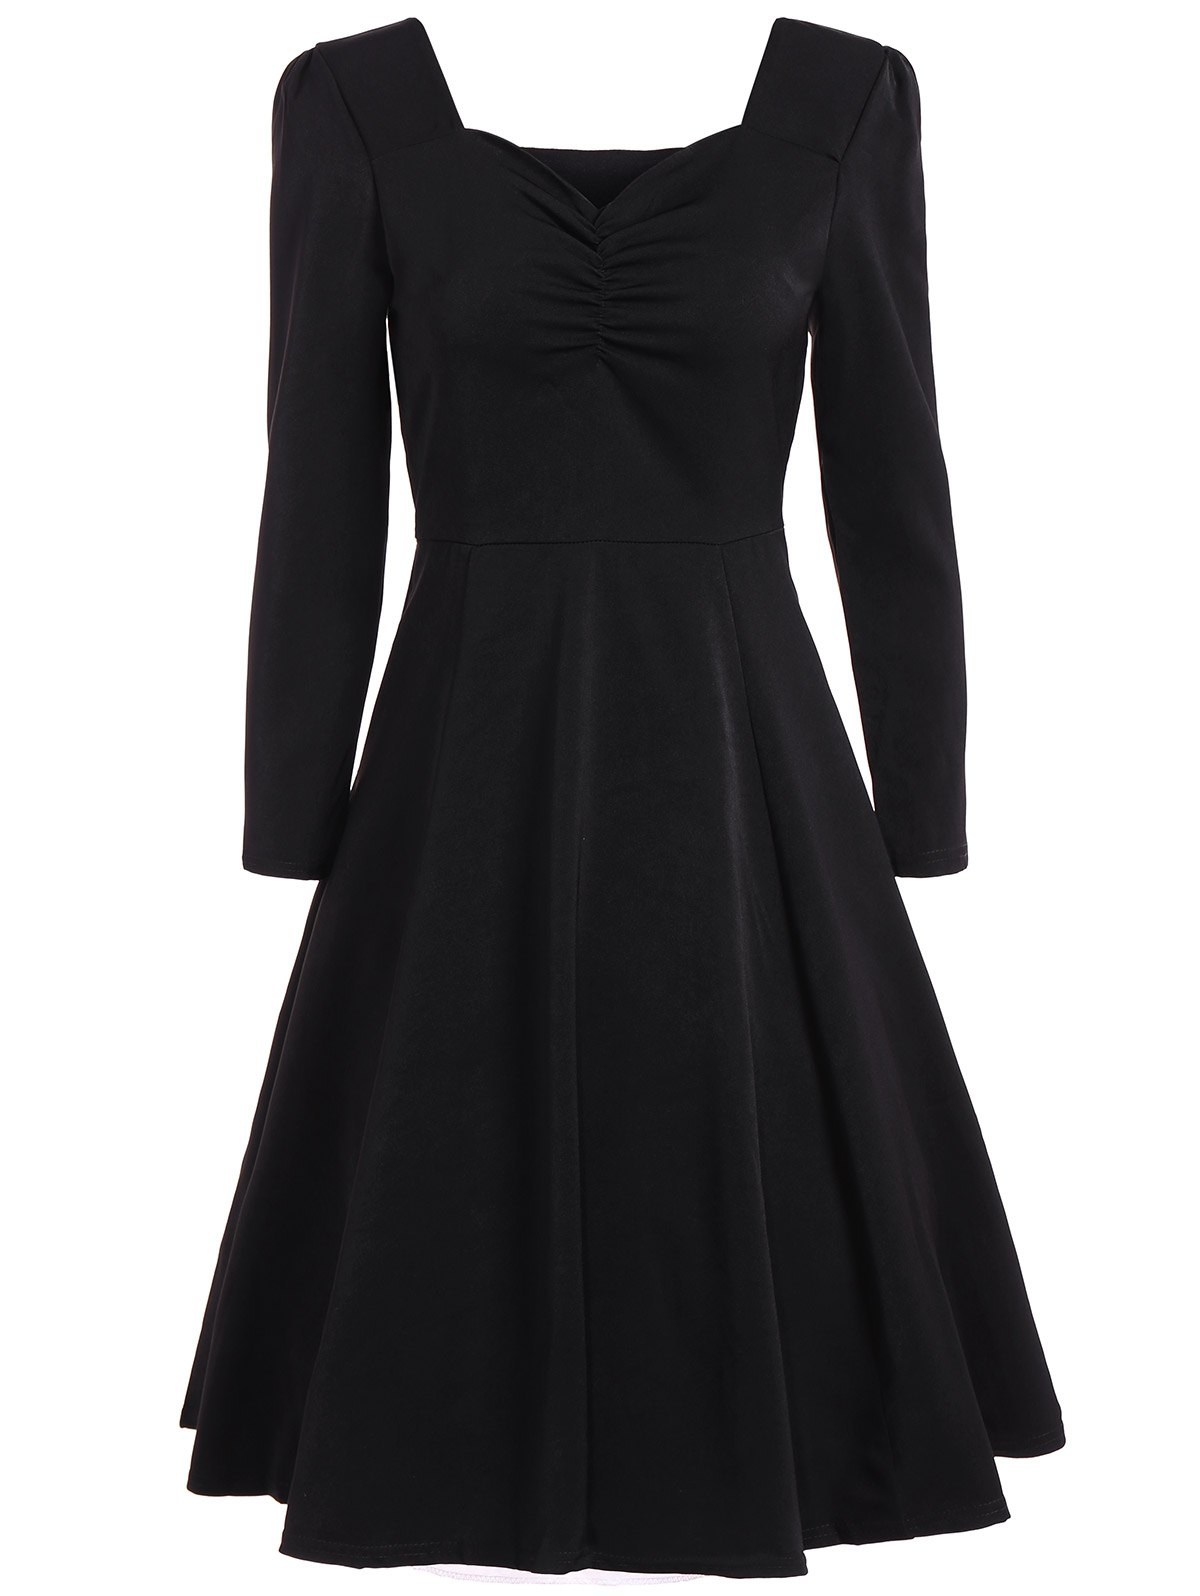 Online Sweetheart Neck Long Sleeve Swing Flare Dress